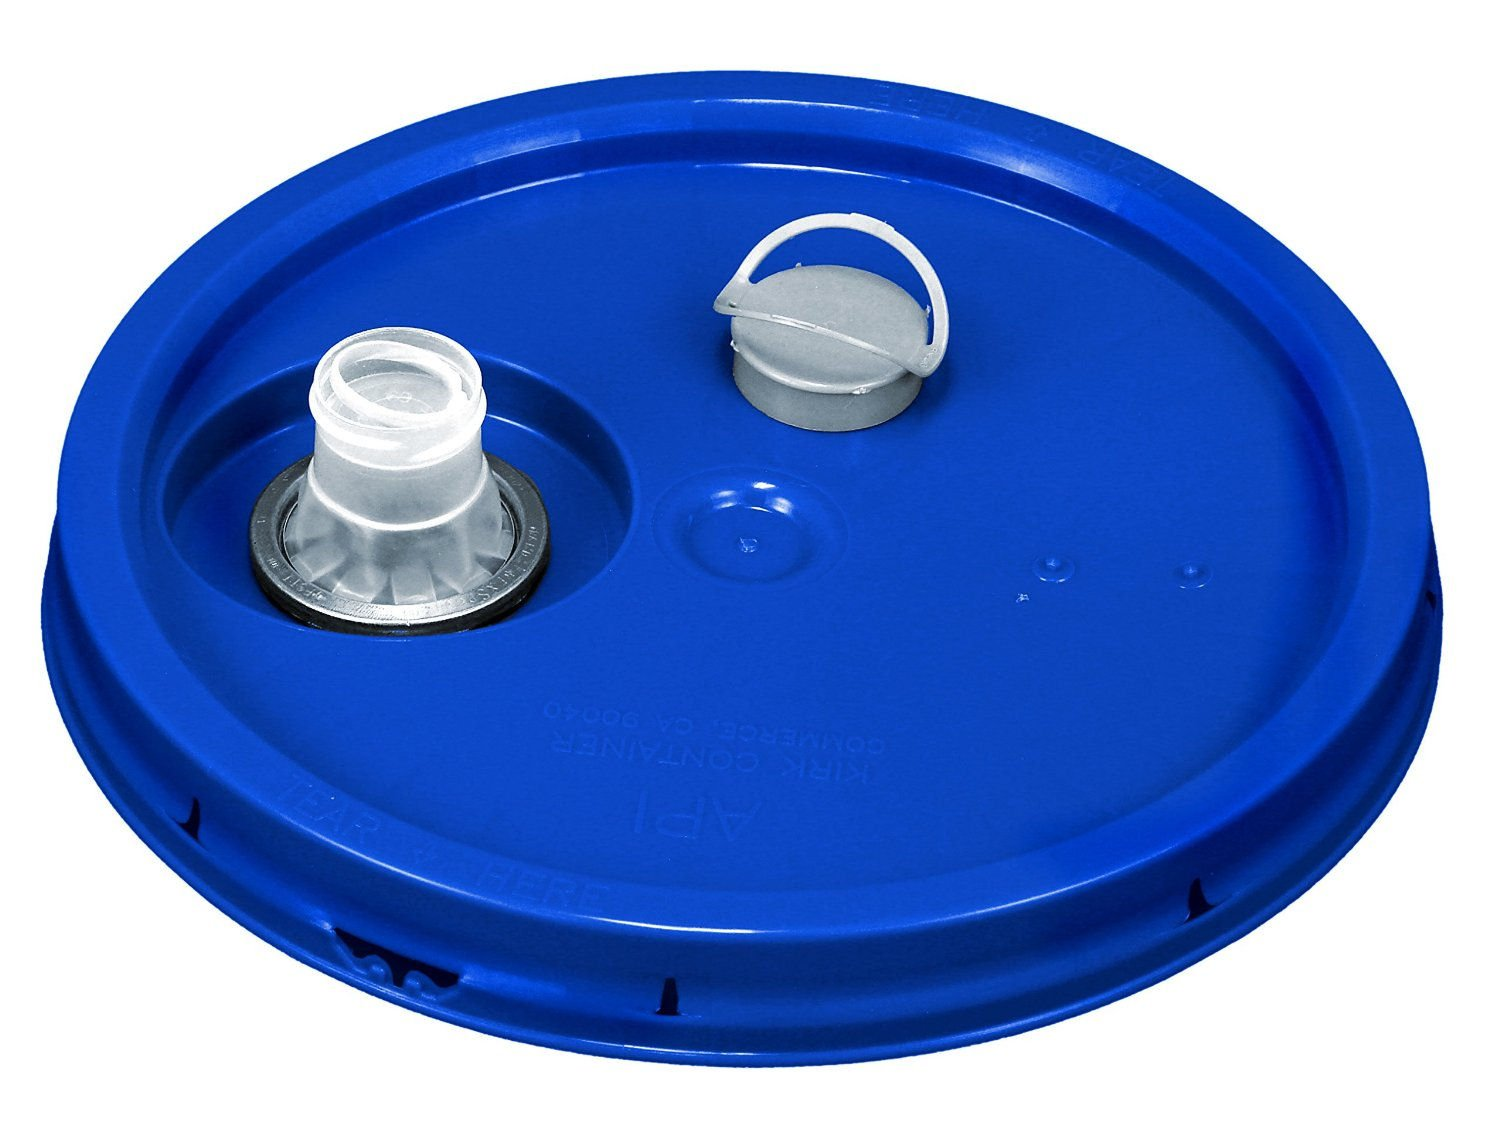 Snap on Lid w/ Gasket & Spout - for 3.5, 4.25, 5, 6, & 7 gallon Buckets